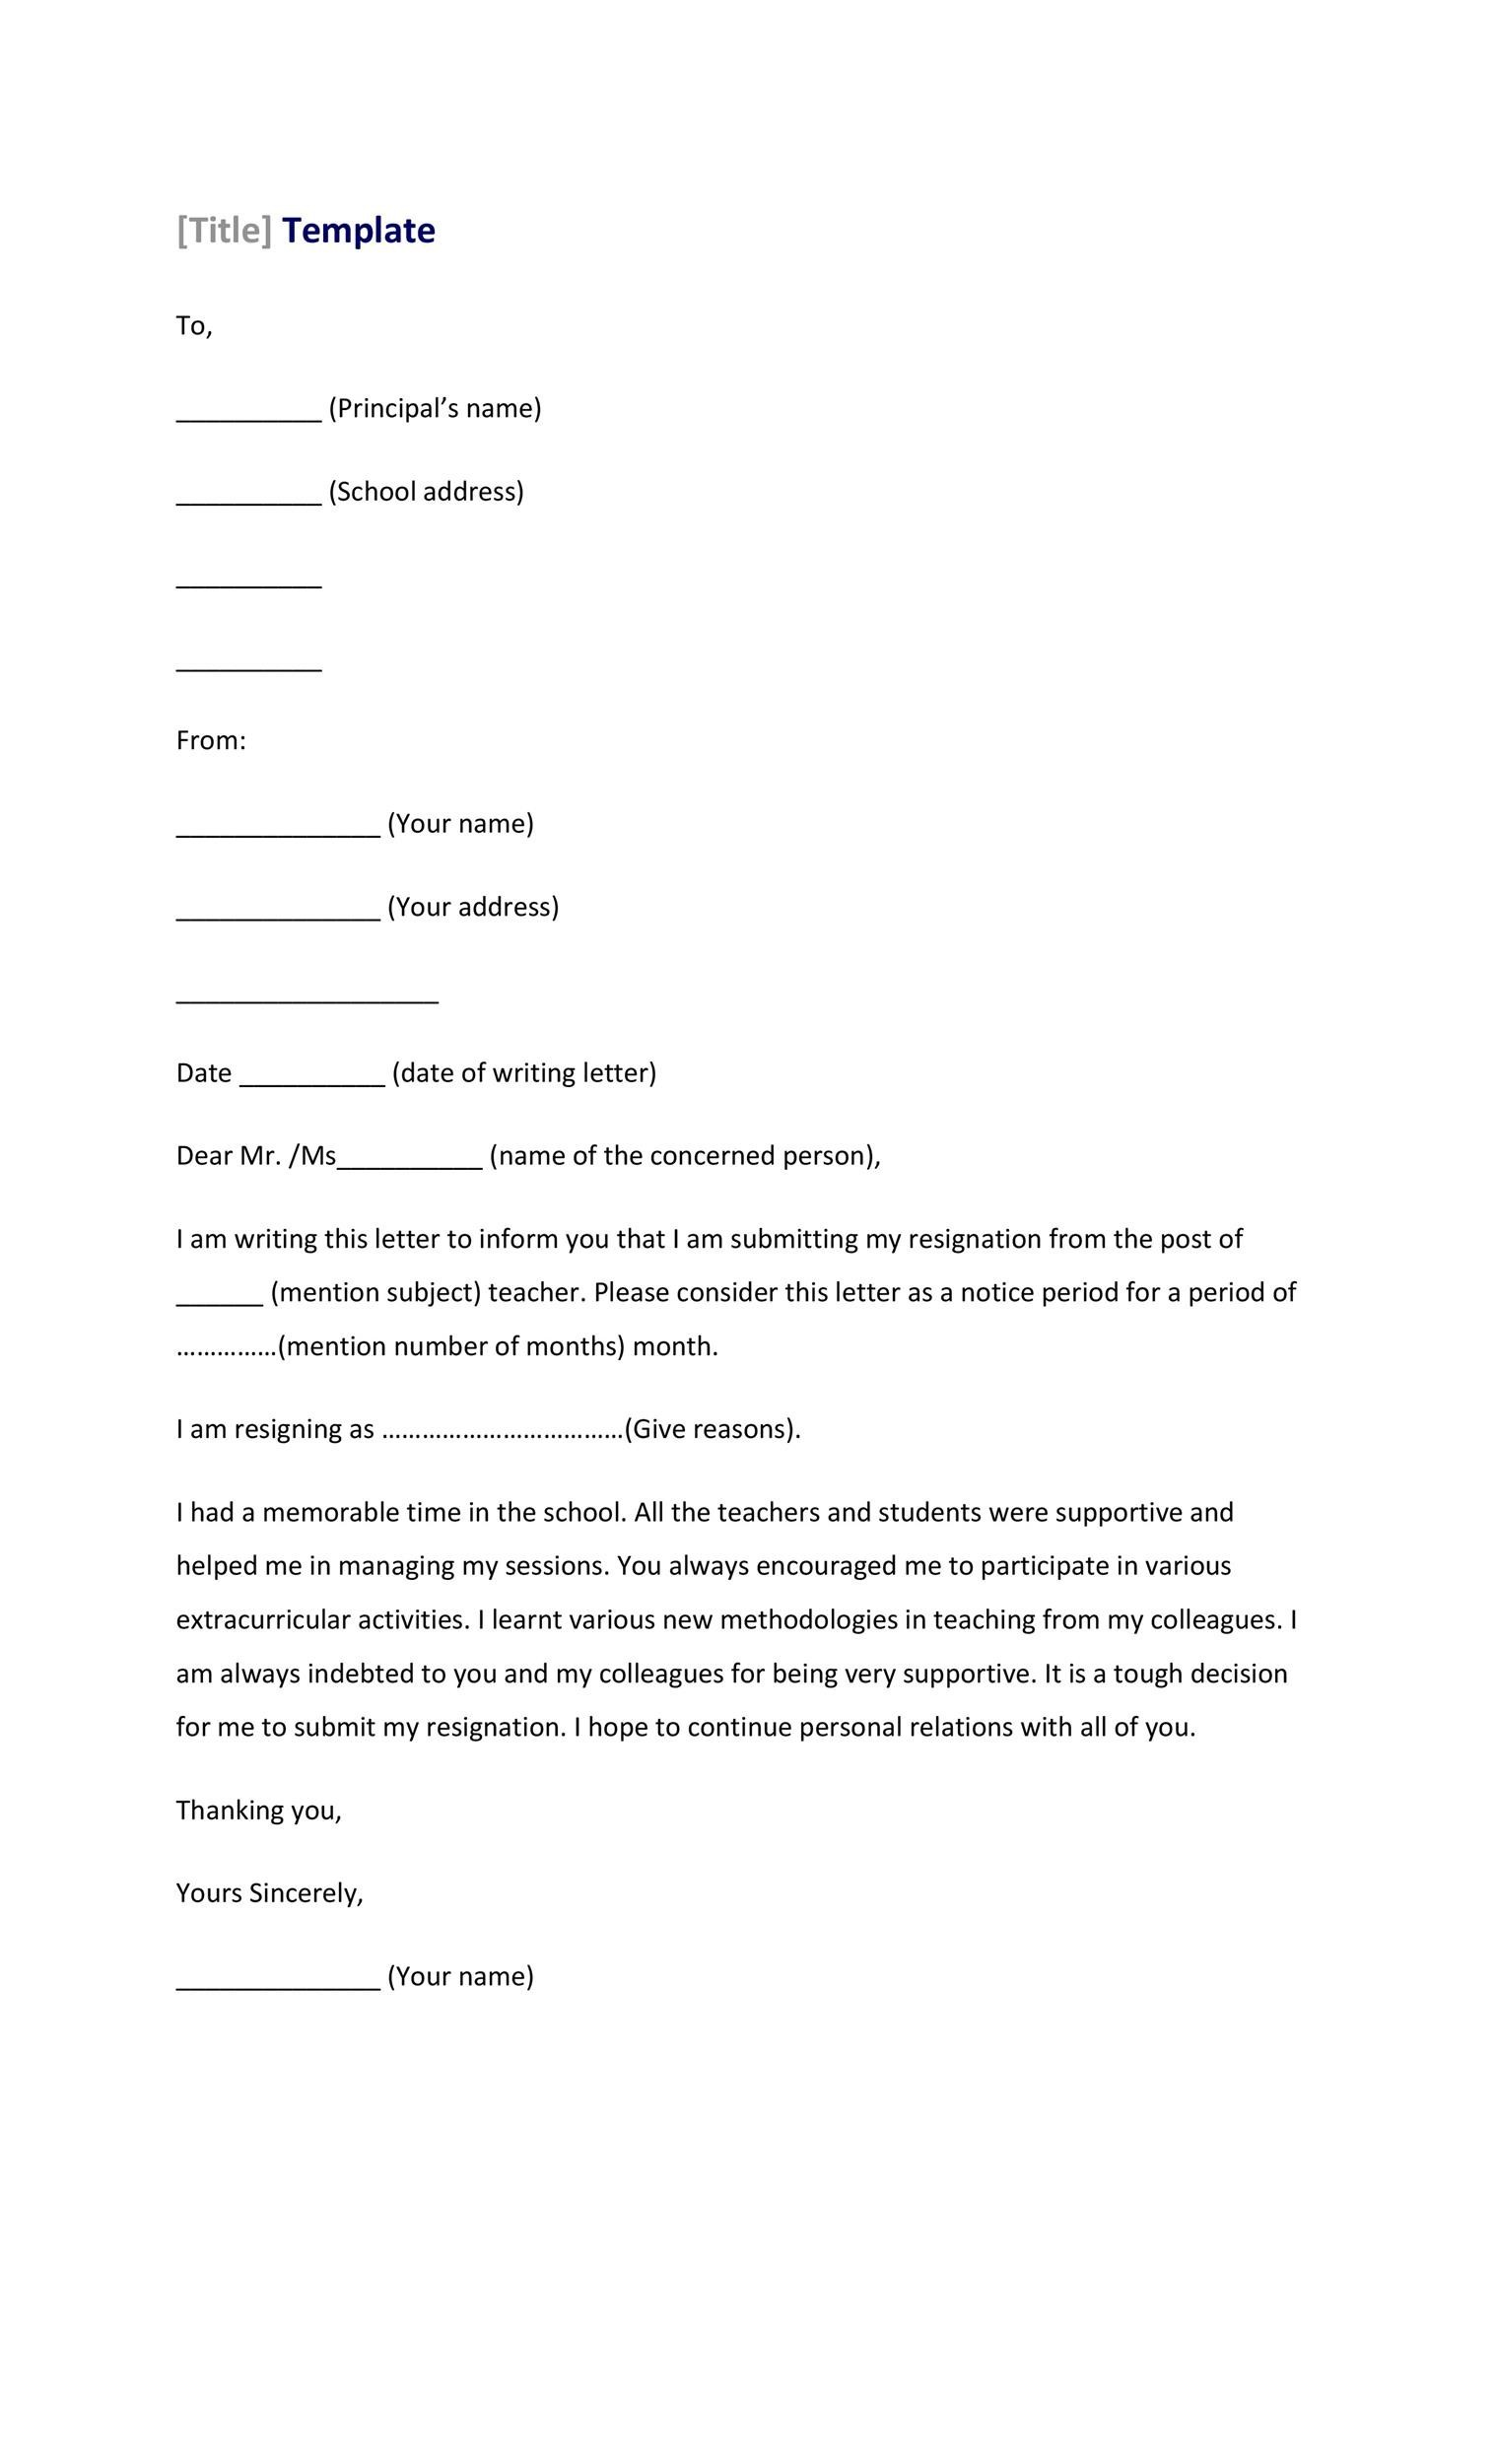 Free teacher resignation letter 06